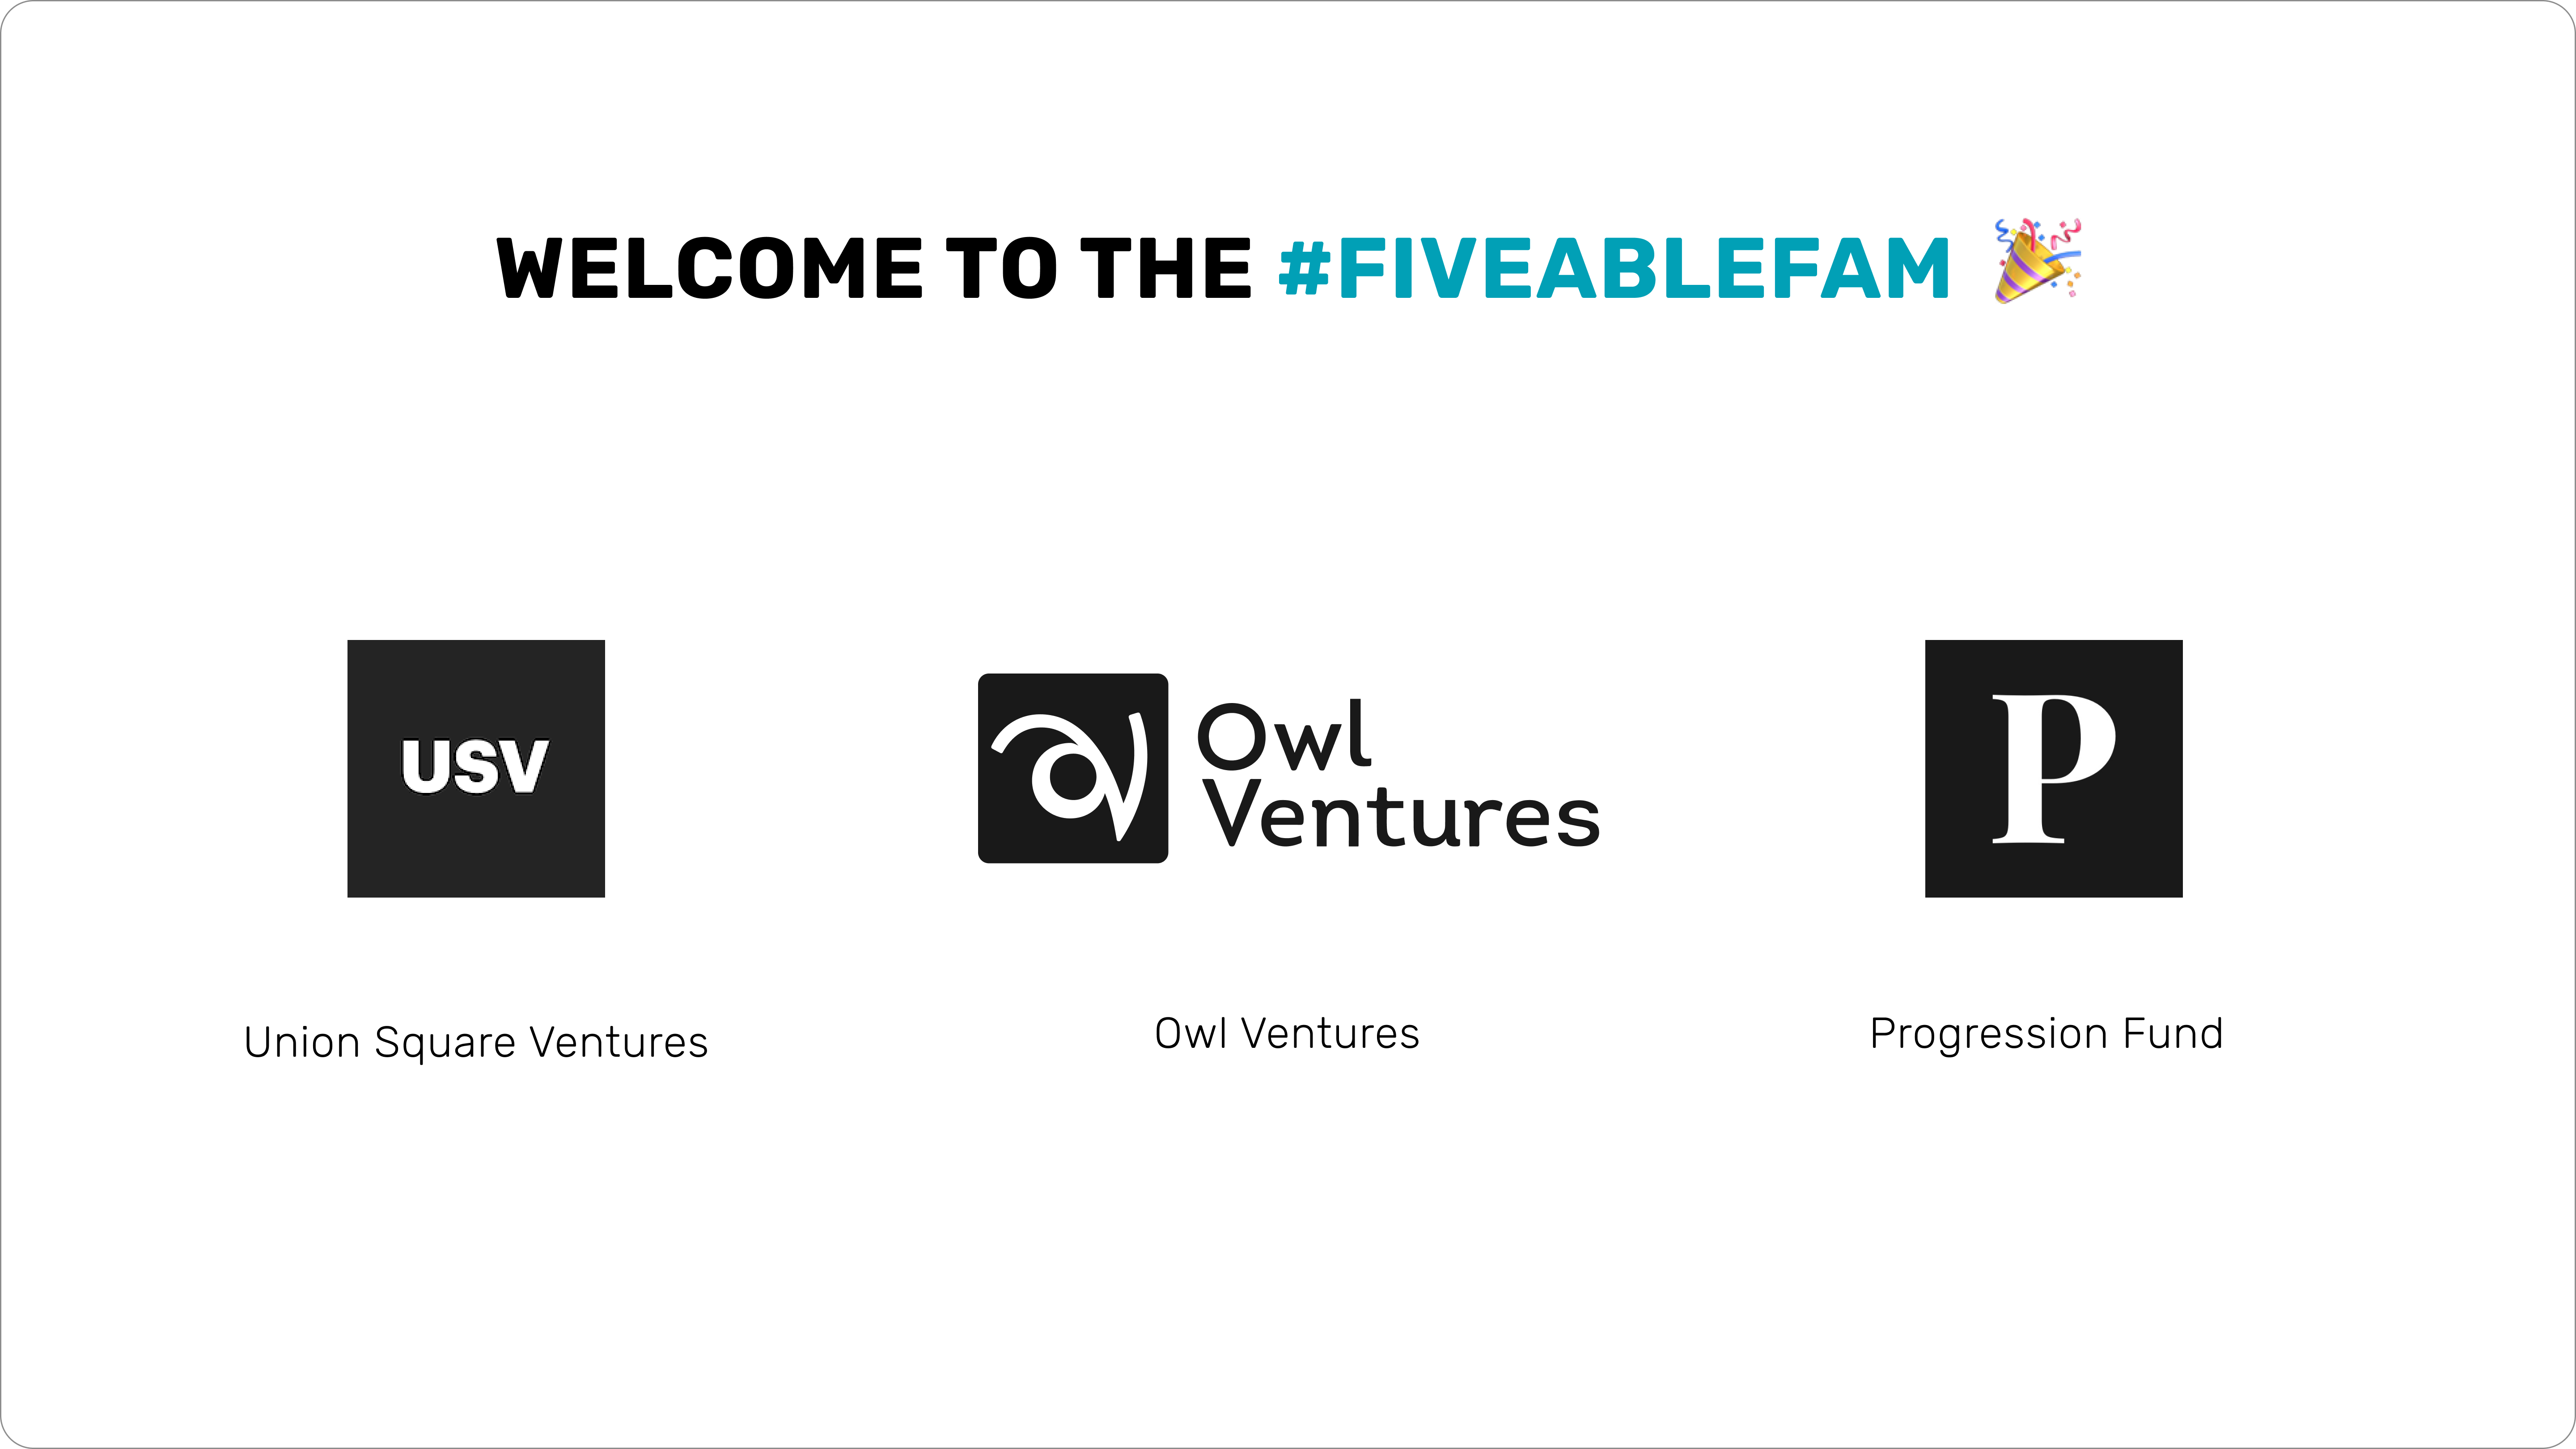 Fiveable Secures $10m in Series A Funding to Support High School Students Beyond APs